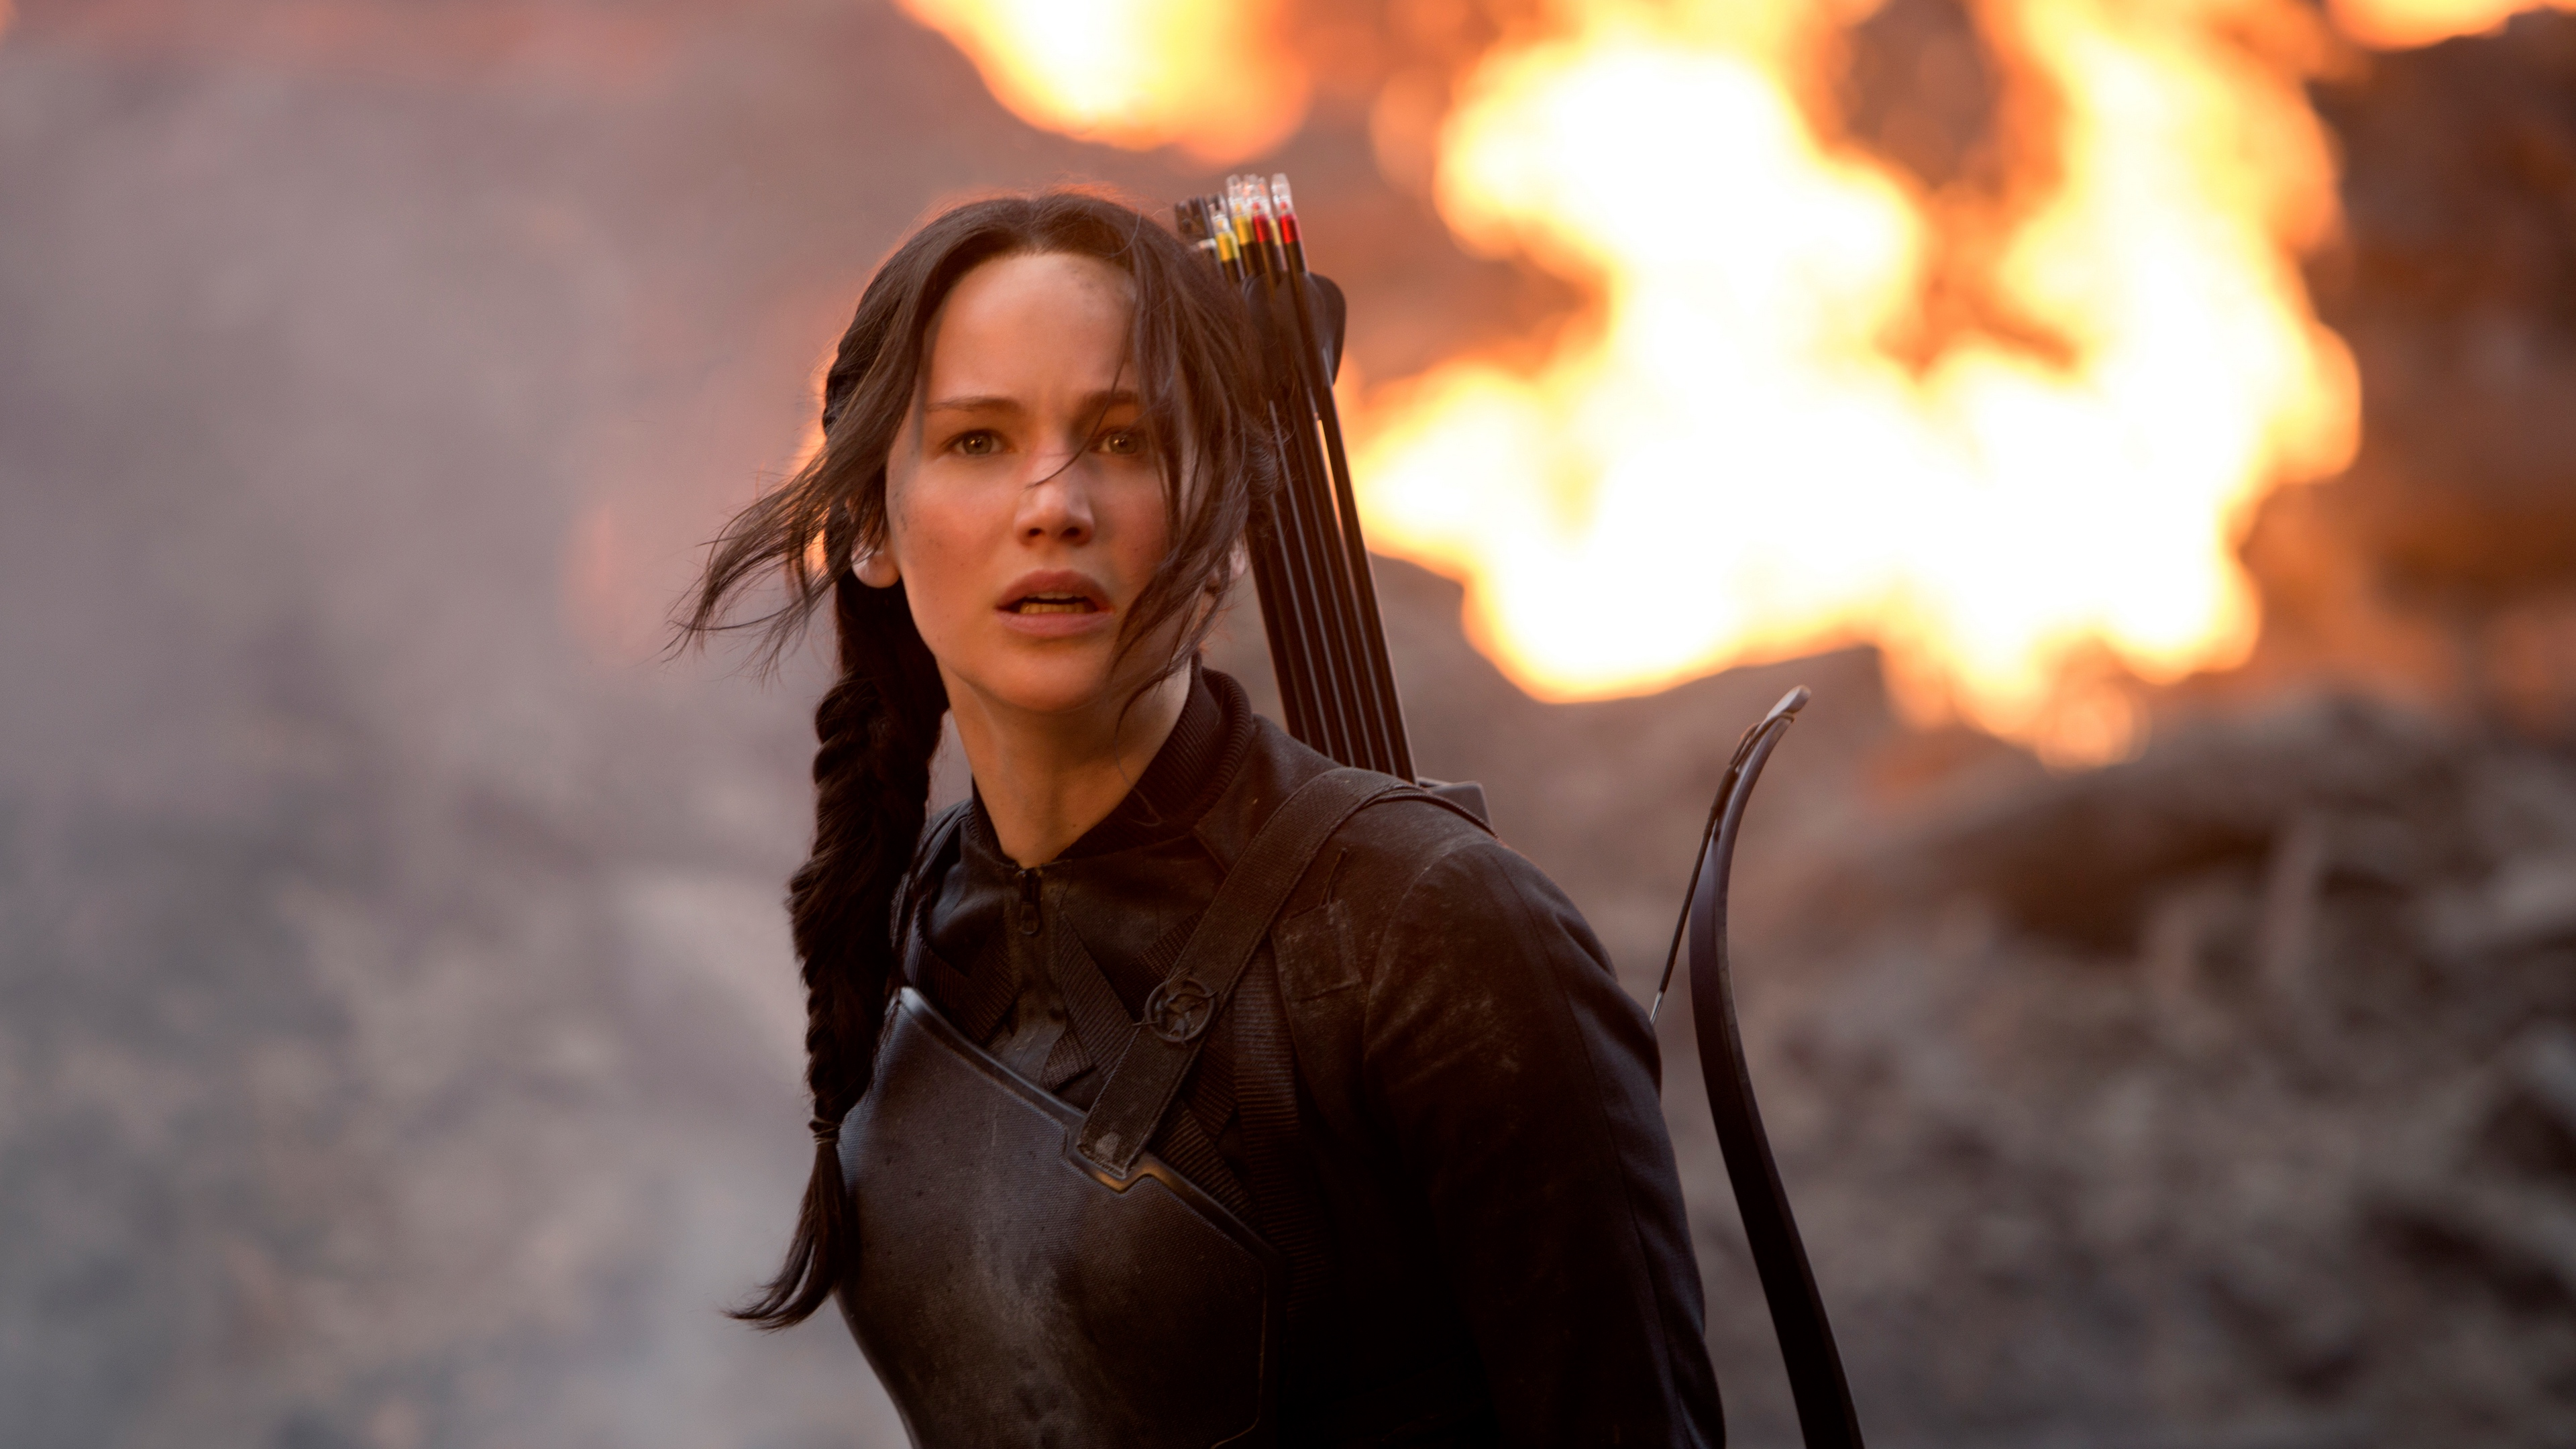 Jennifer Lawrence Removed From Hunger Games Posters in